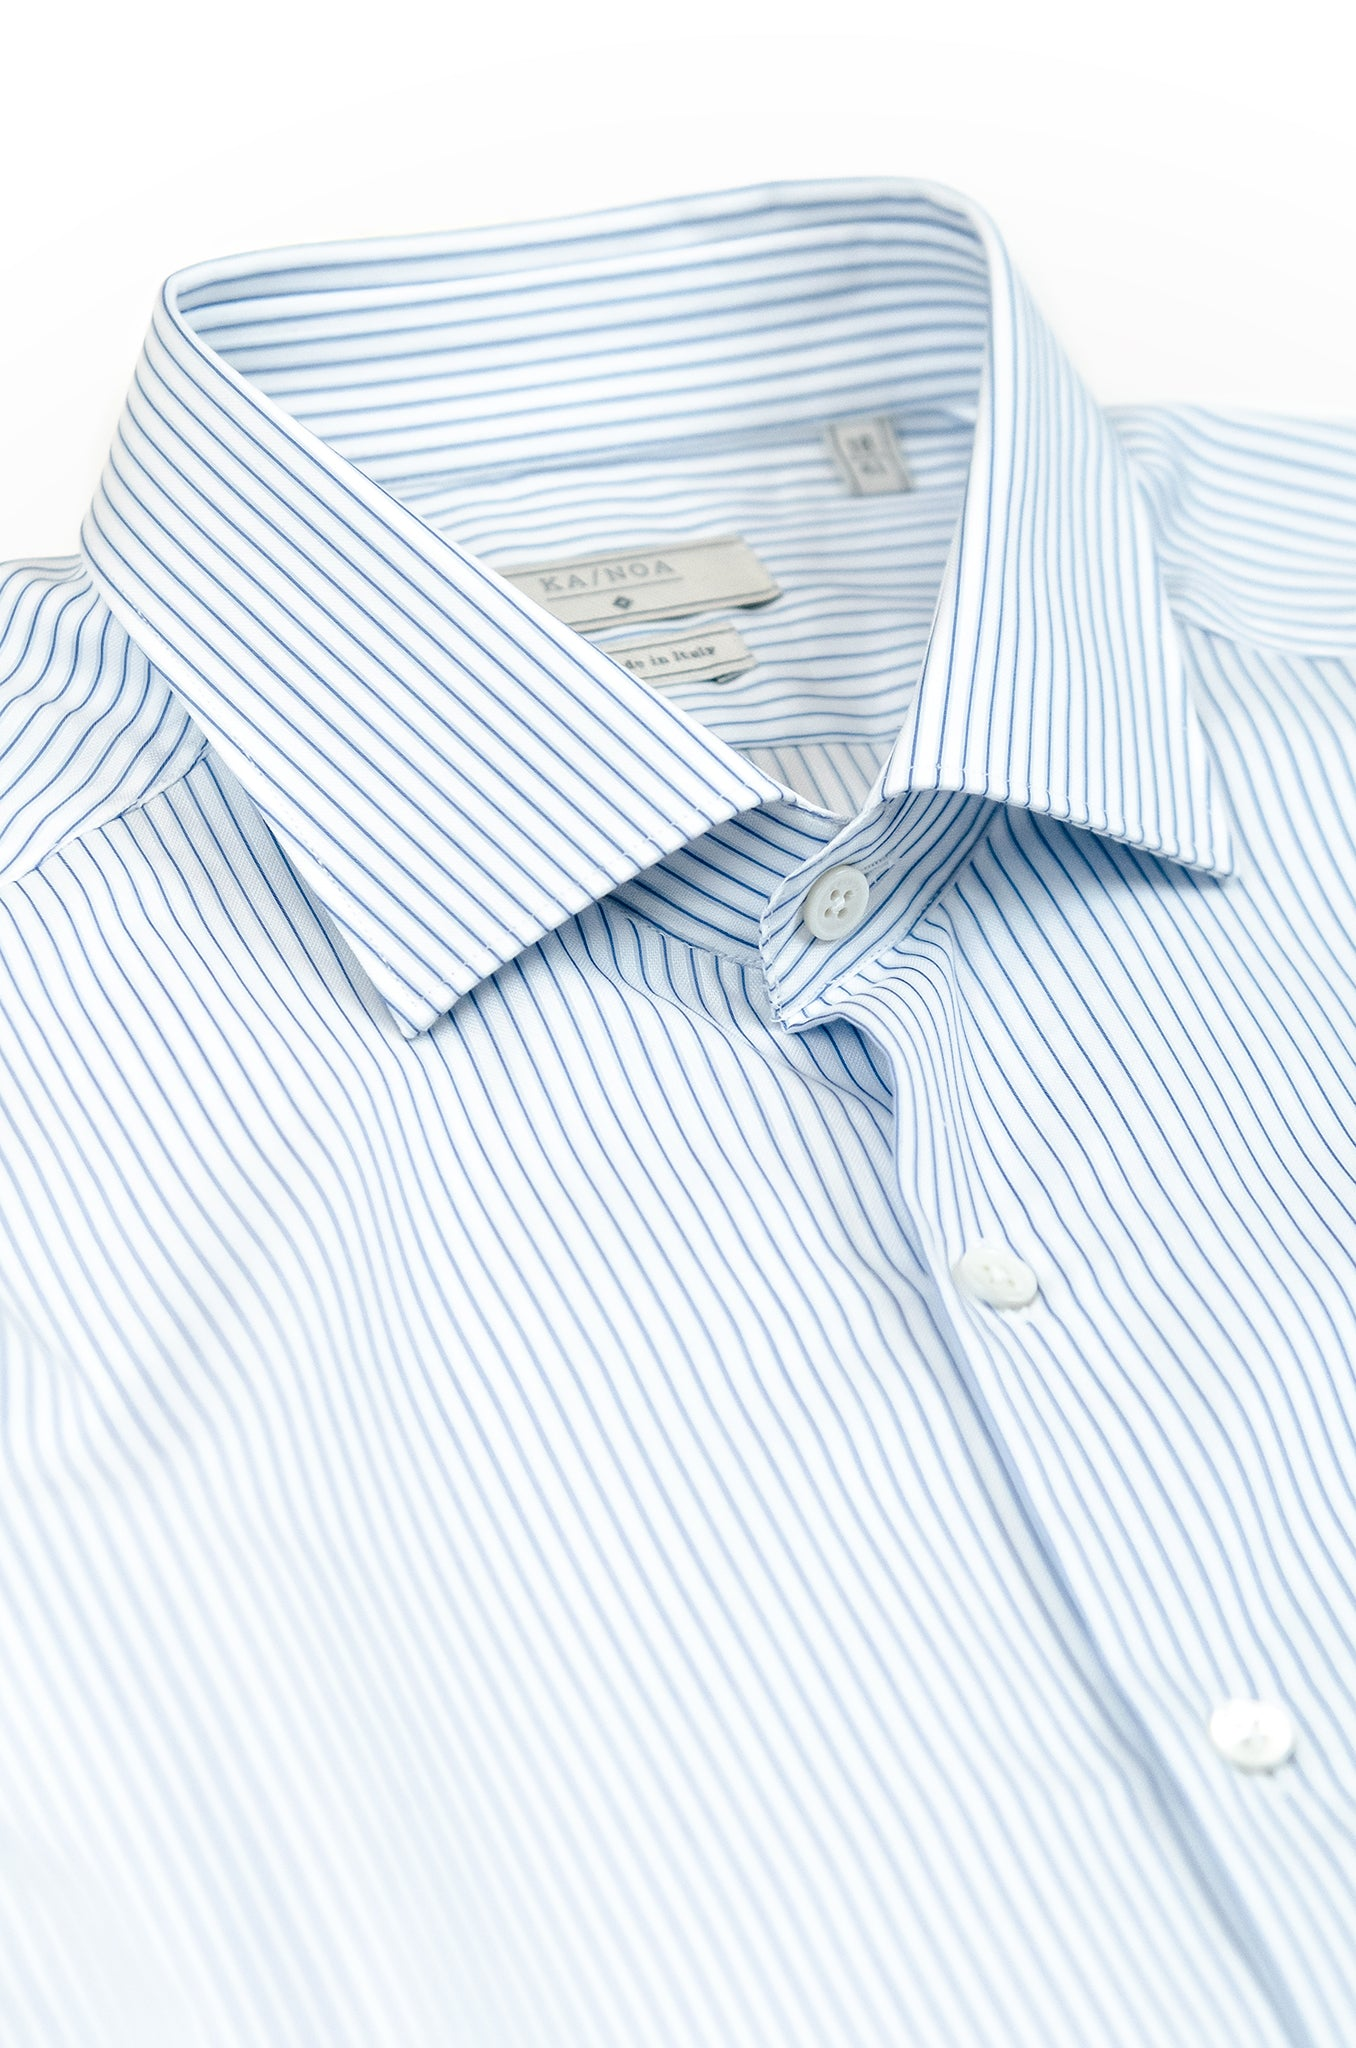 Clamenc long-sleeved shirt in stripe piquet